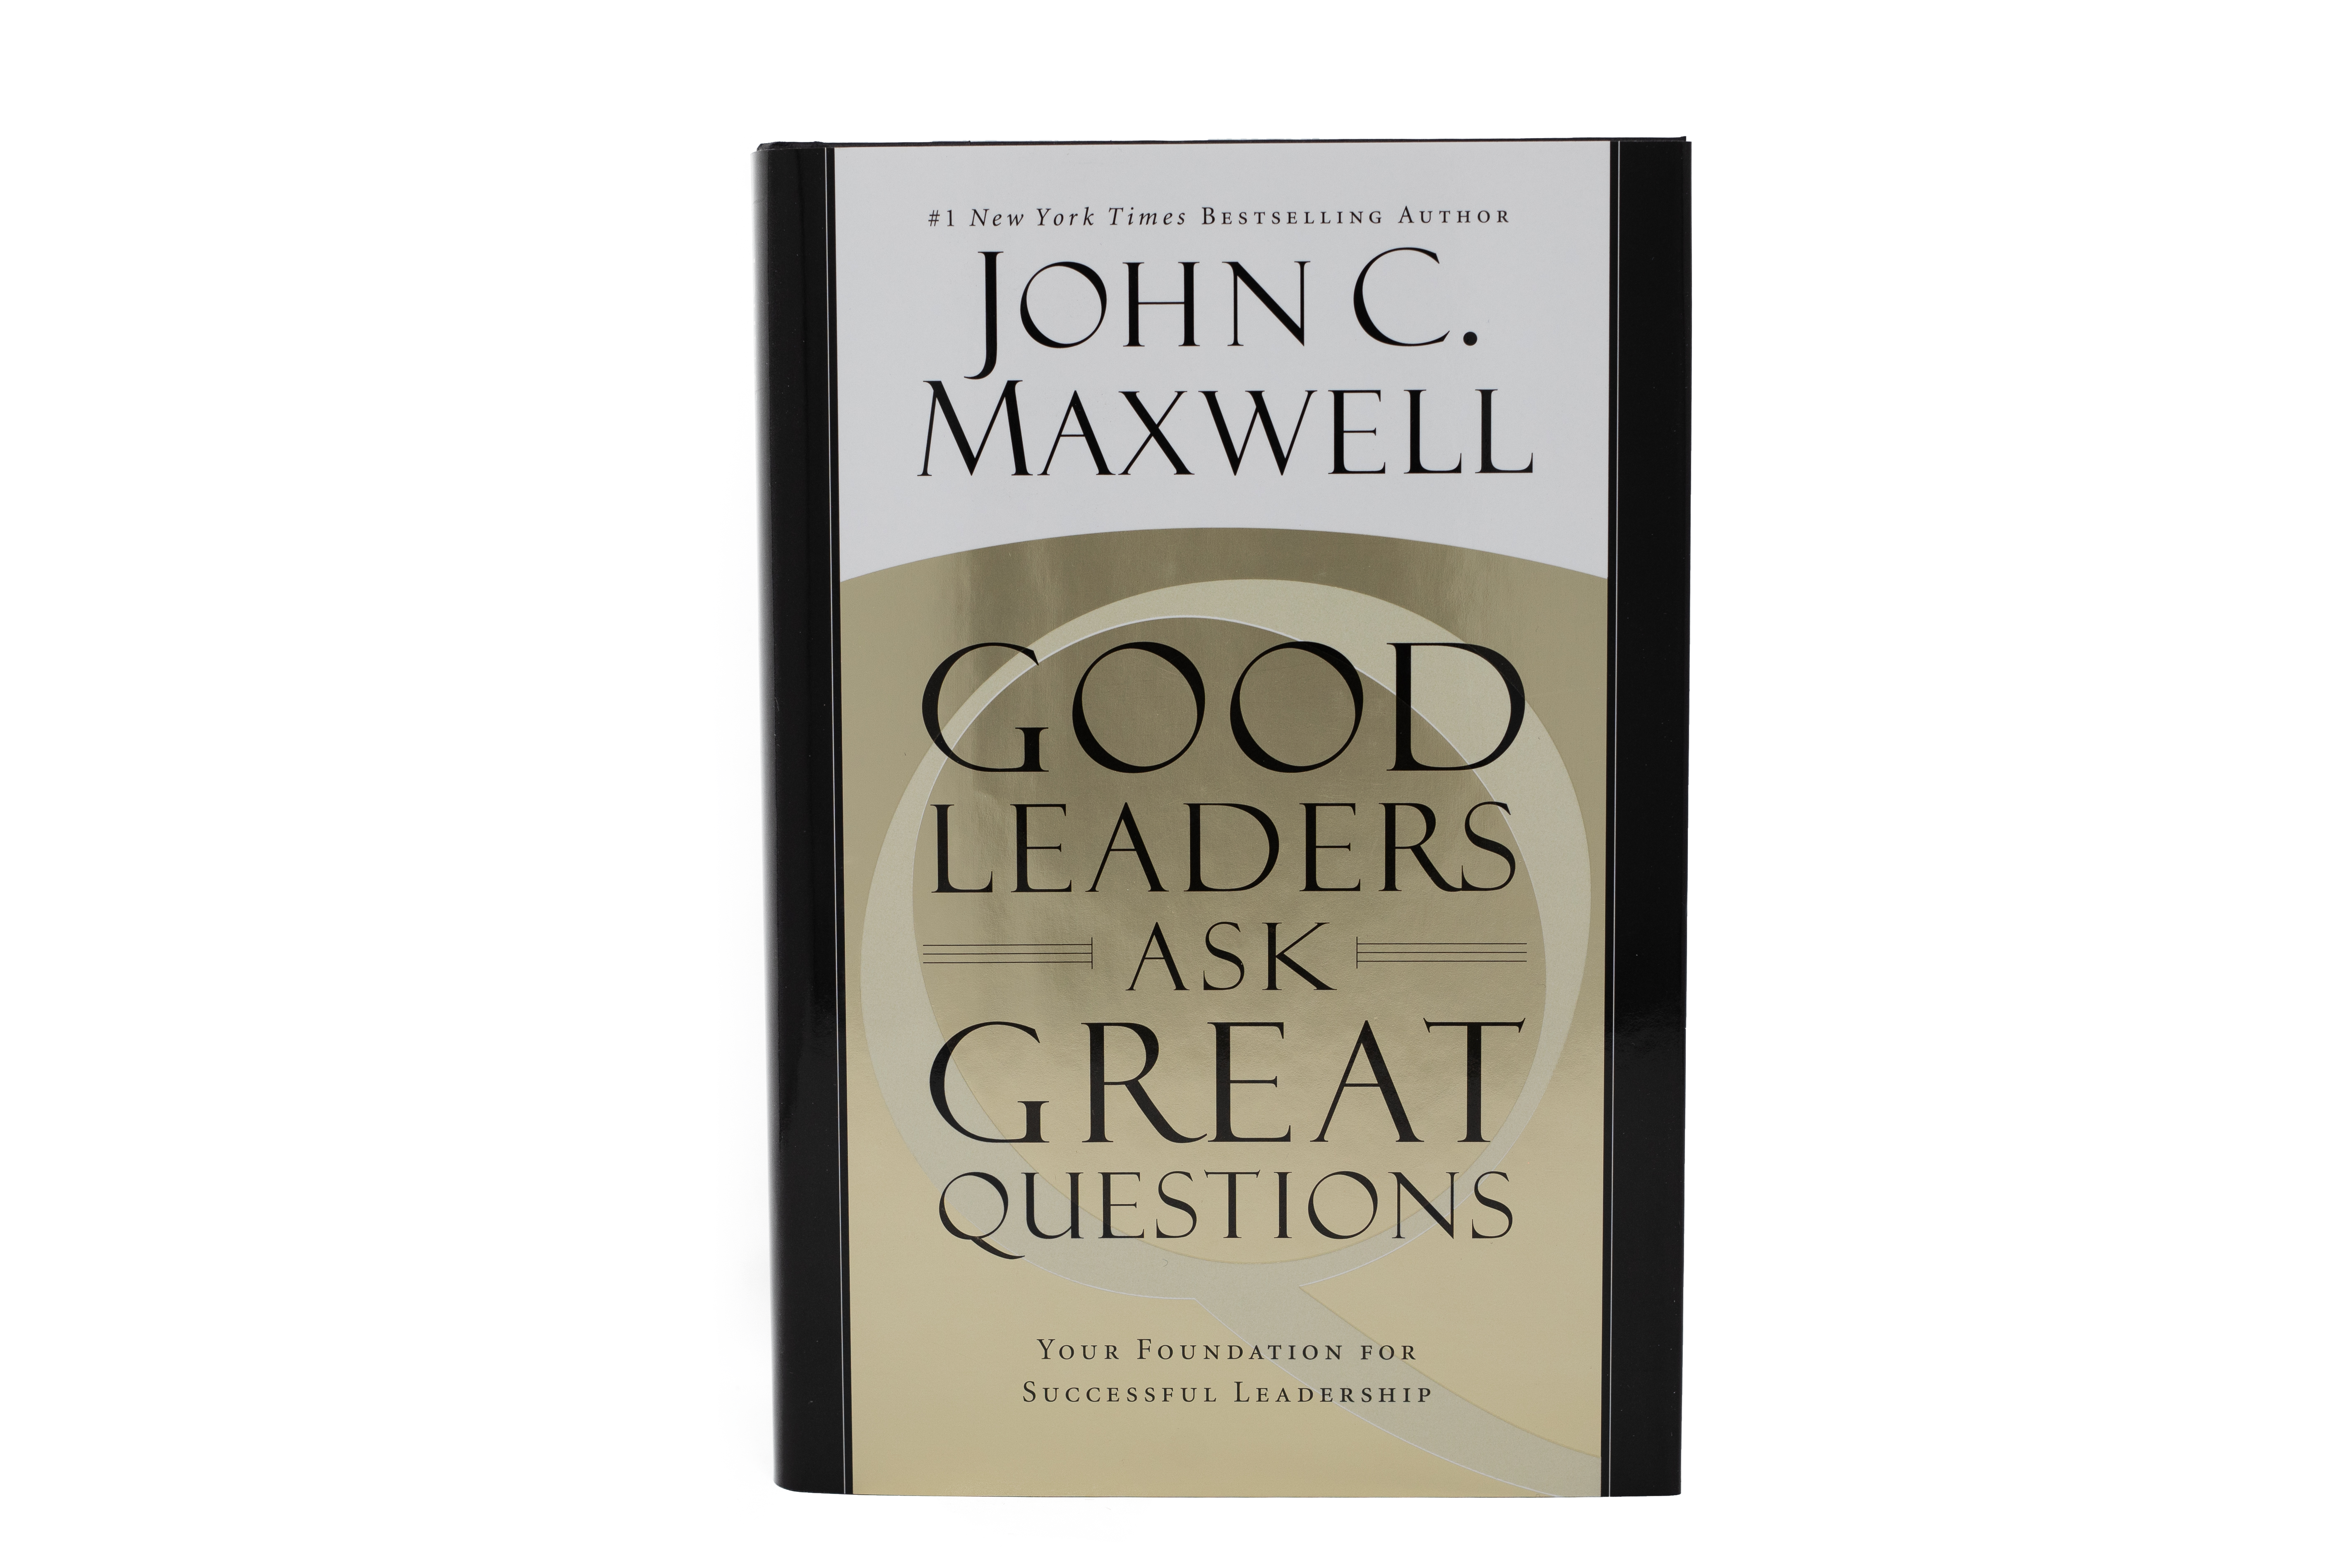 SIGNED COPY - Good Leaders Ask Great Questions [Hardcover]